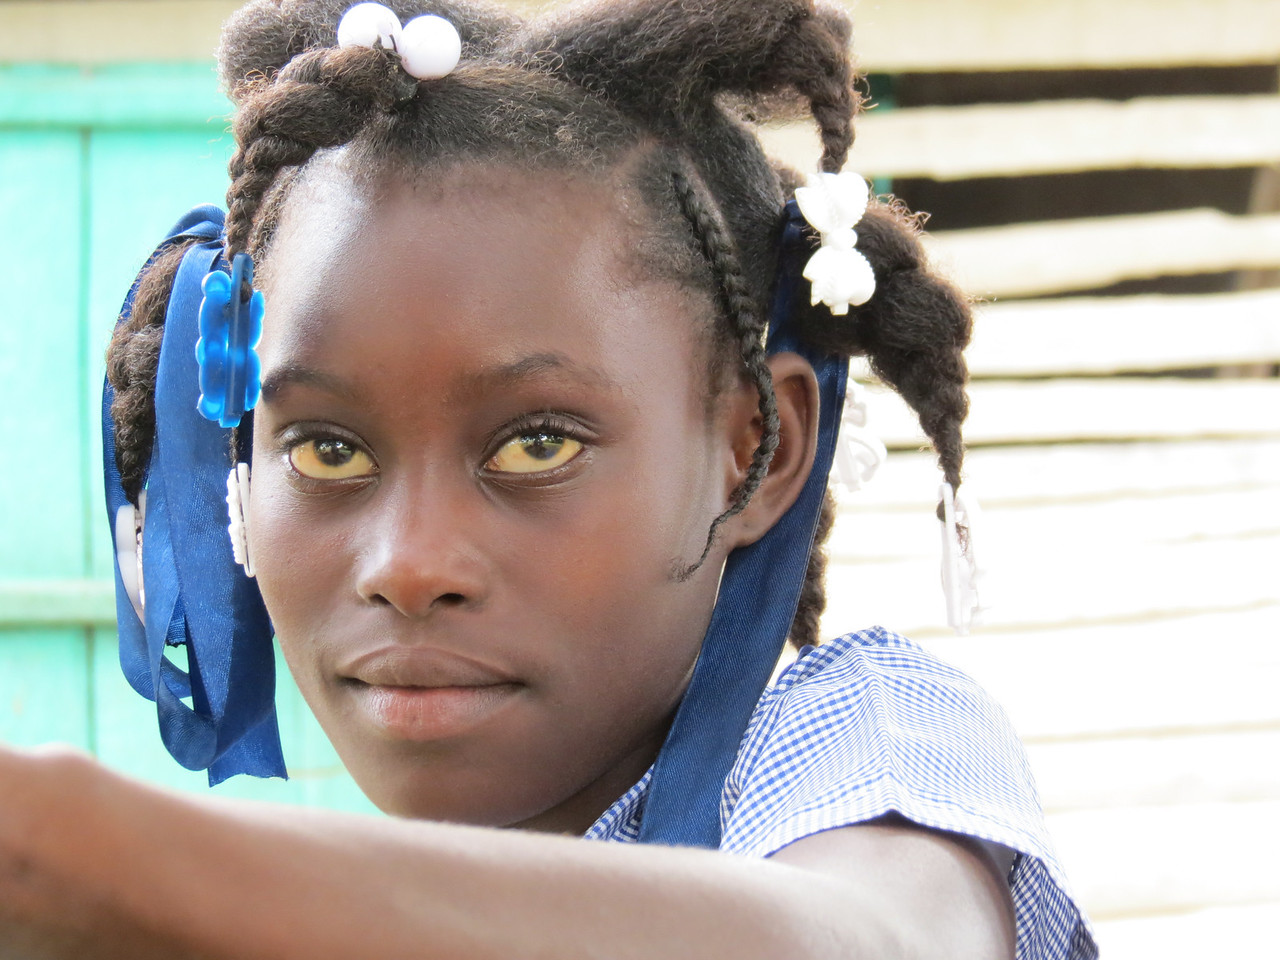 A beautiful kid.  I wonder what the yellow eyes mean -not good is my guess.